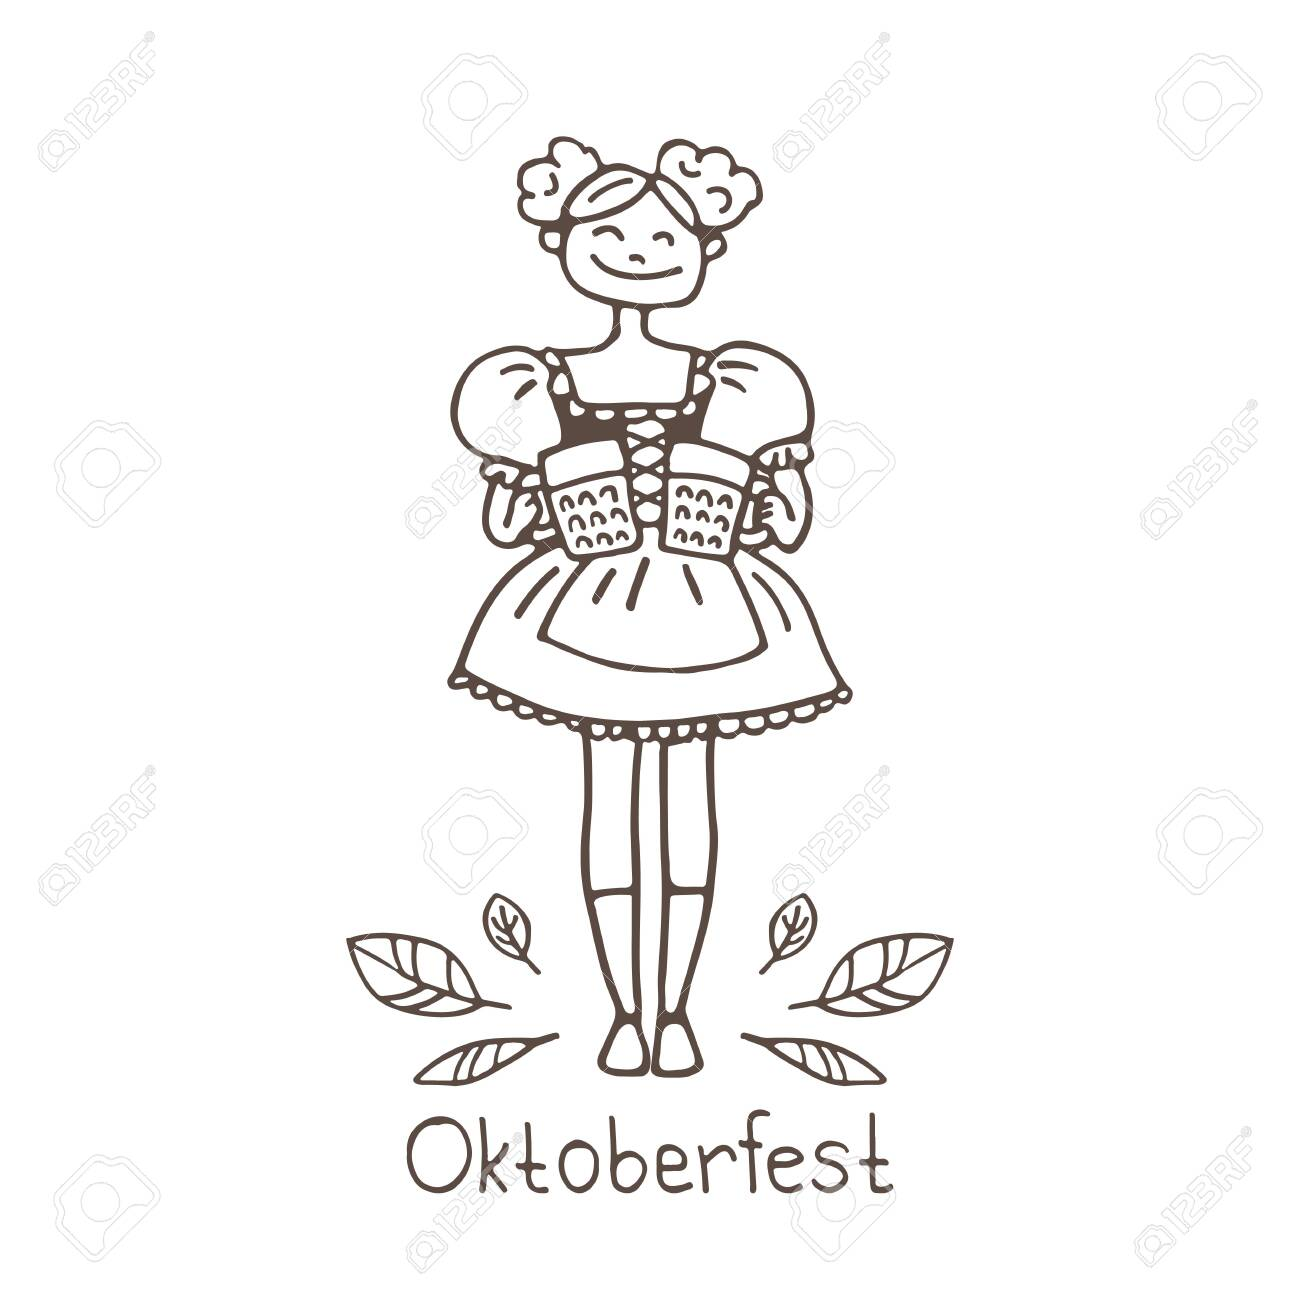 Oktoberfest Waitress With Beer Mugs Doodle Style October Beer Royalty Free Cliparts Vectors And Stock Illustration Image 139462699